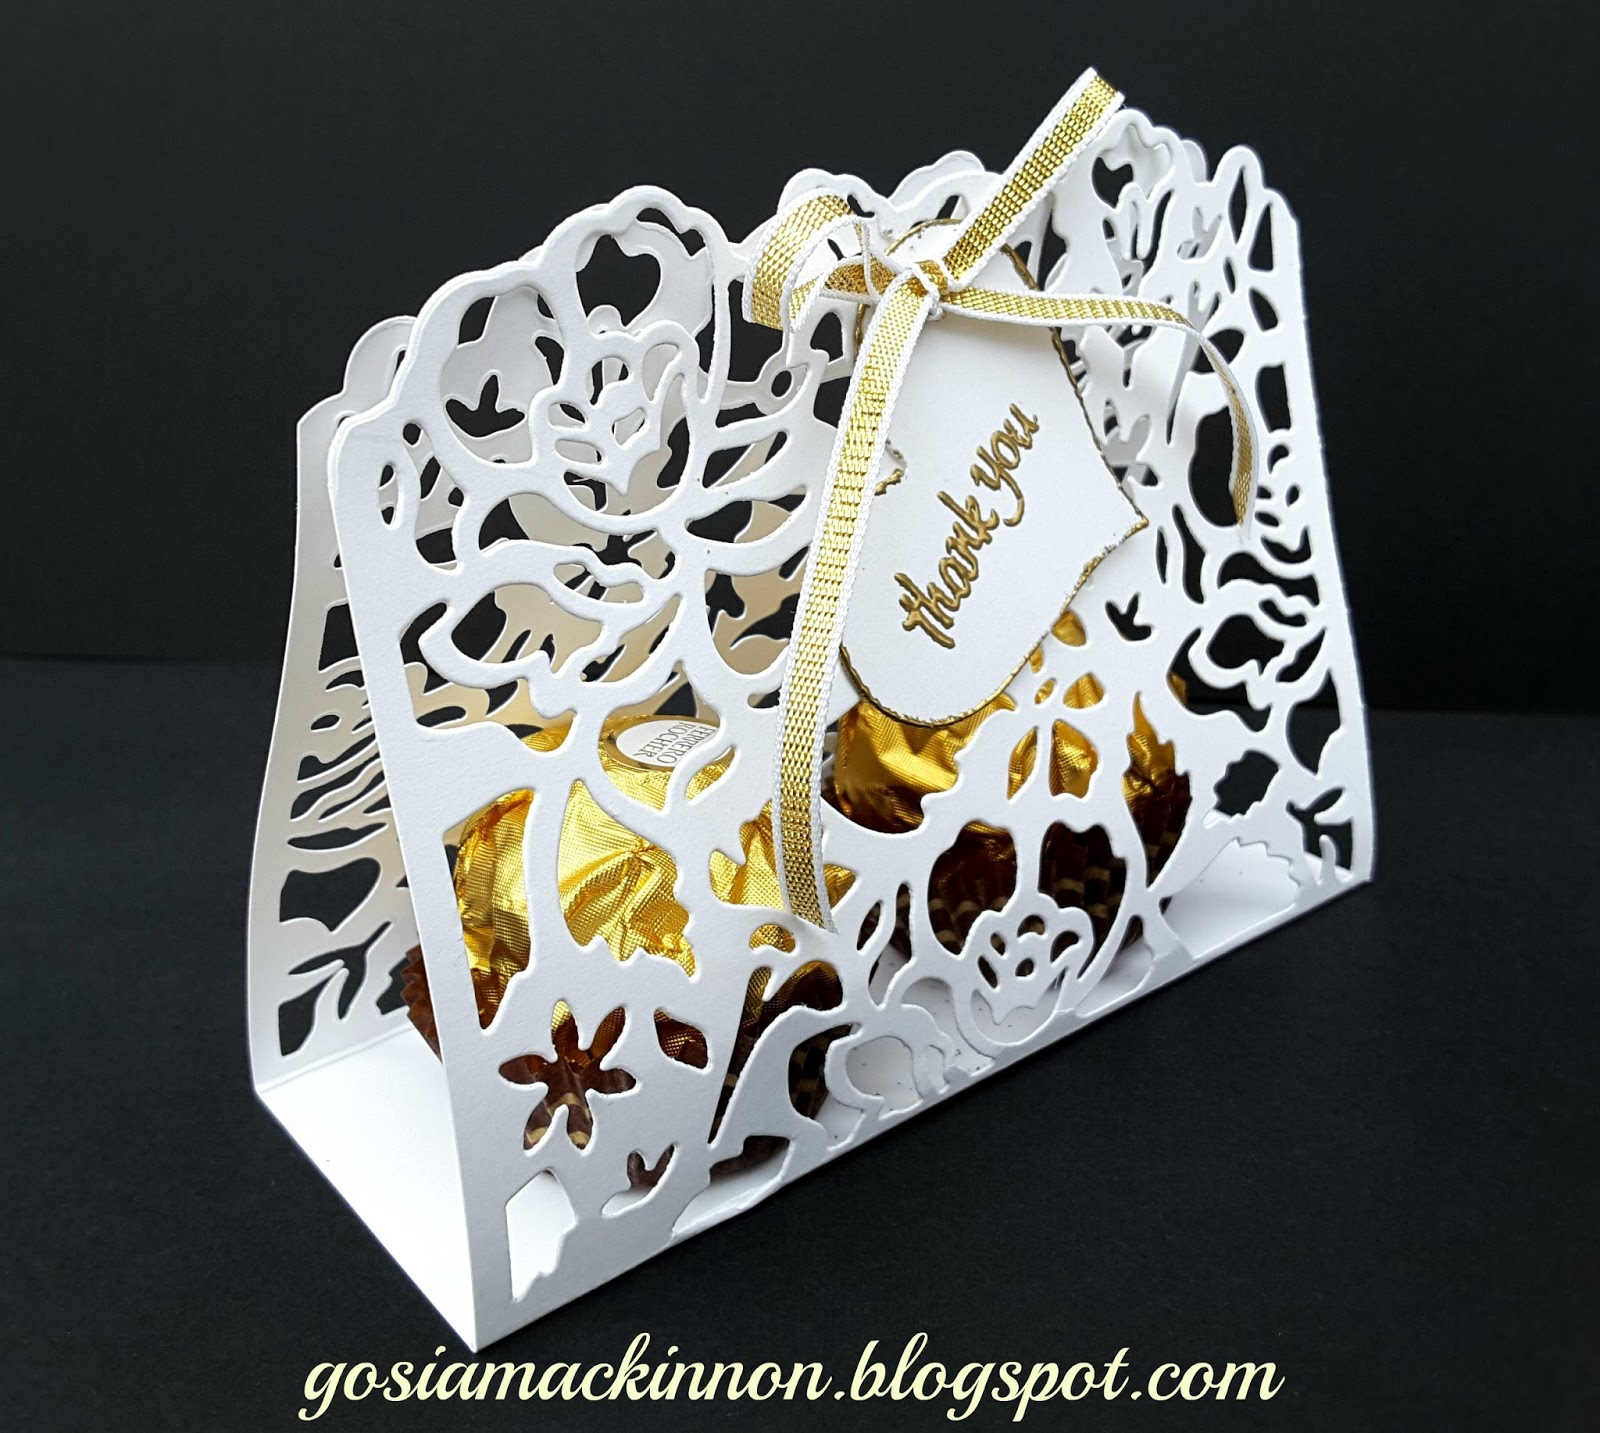 Wedding Thankyou Gifts: DETAILED FLORAL THINLITS WEDDING GUEST THANK YOU GIFT BOX